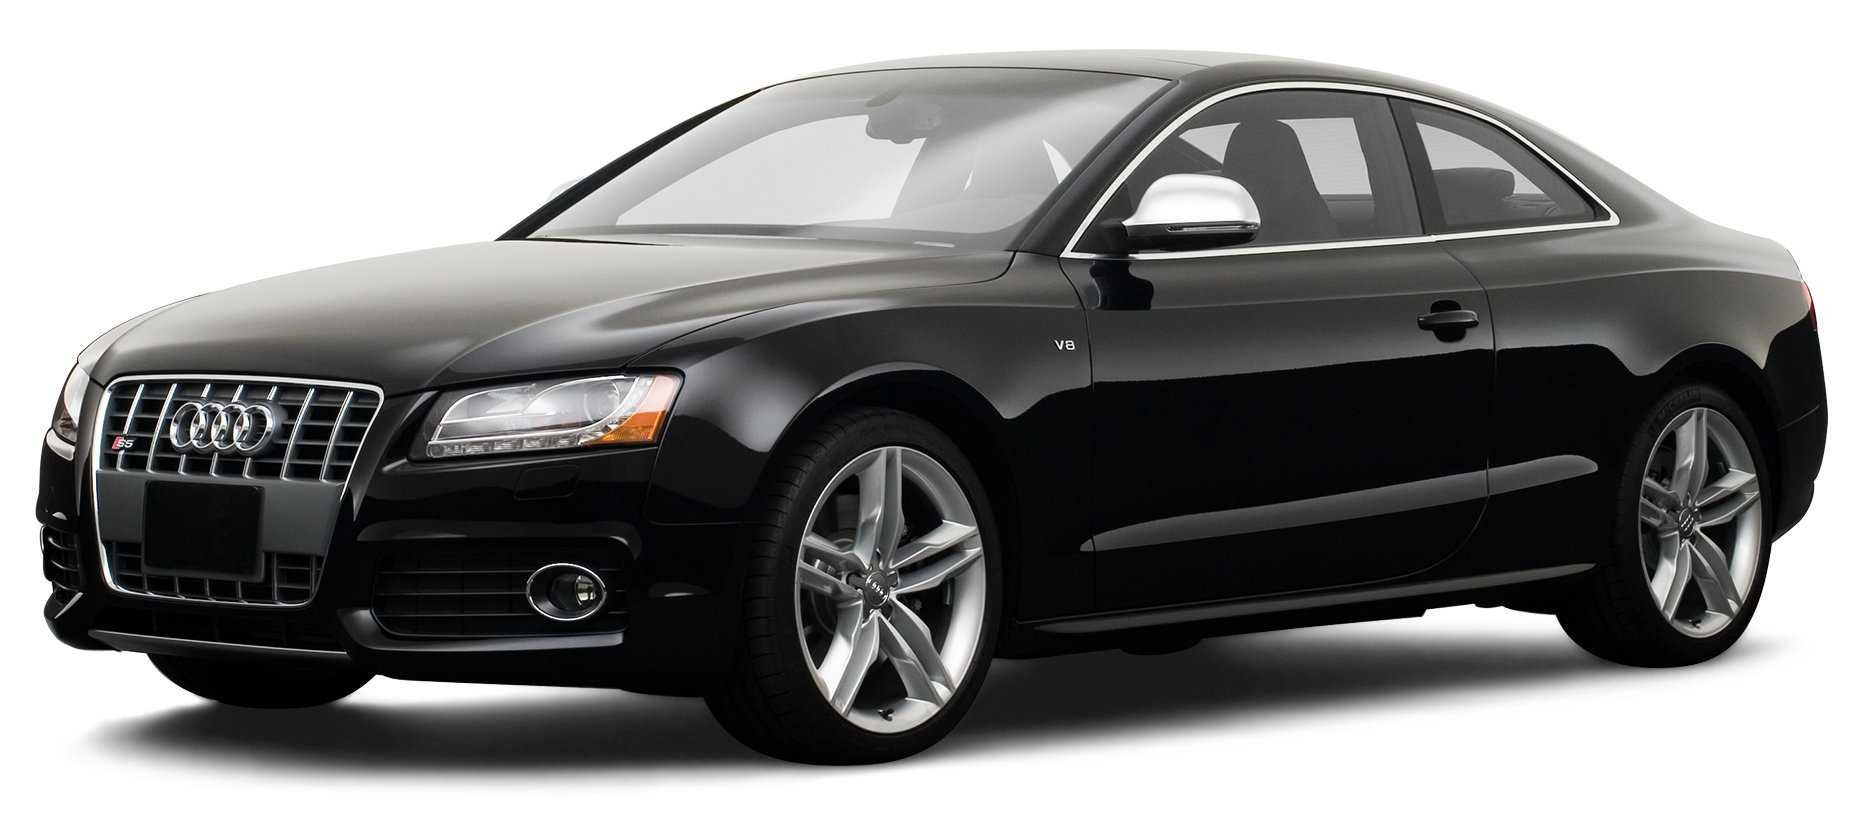 ... 2008 Audi S5, 2-Door Coupe Automatic Transmission